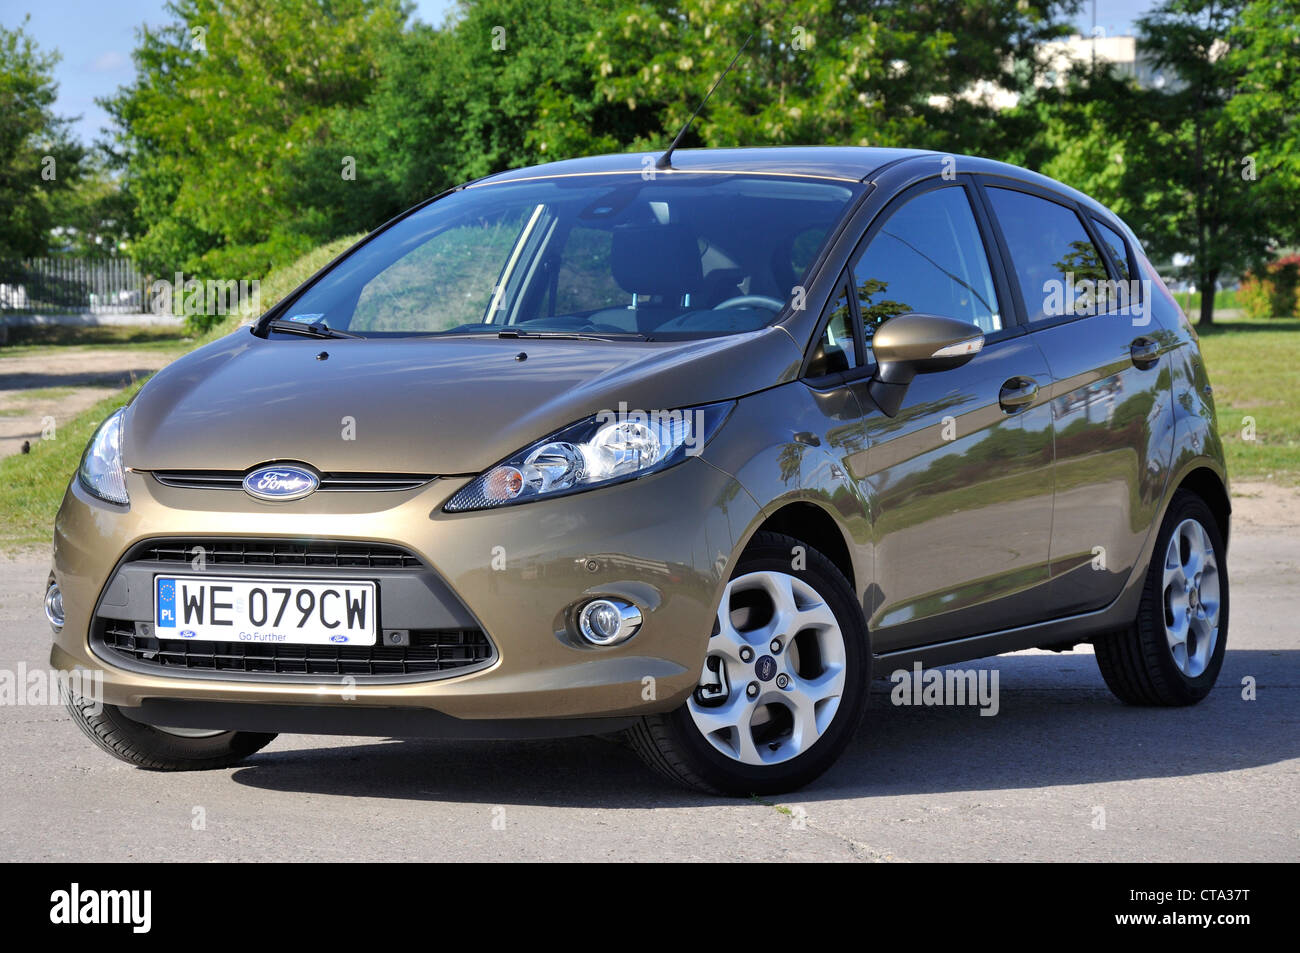 Ford Fiesta Stock Photos Images Alamy 2012 Fuel Filter My 2008 Fl Popular German Small City Car